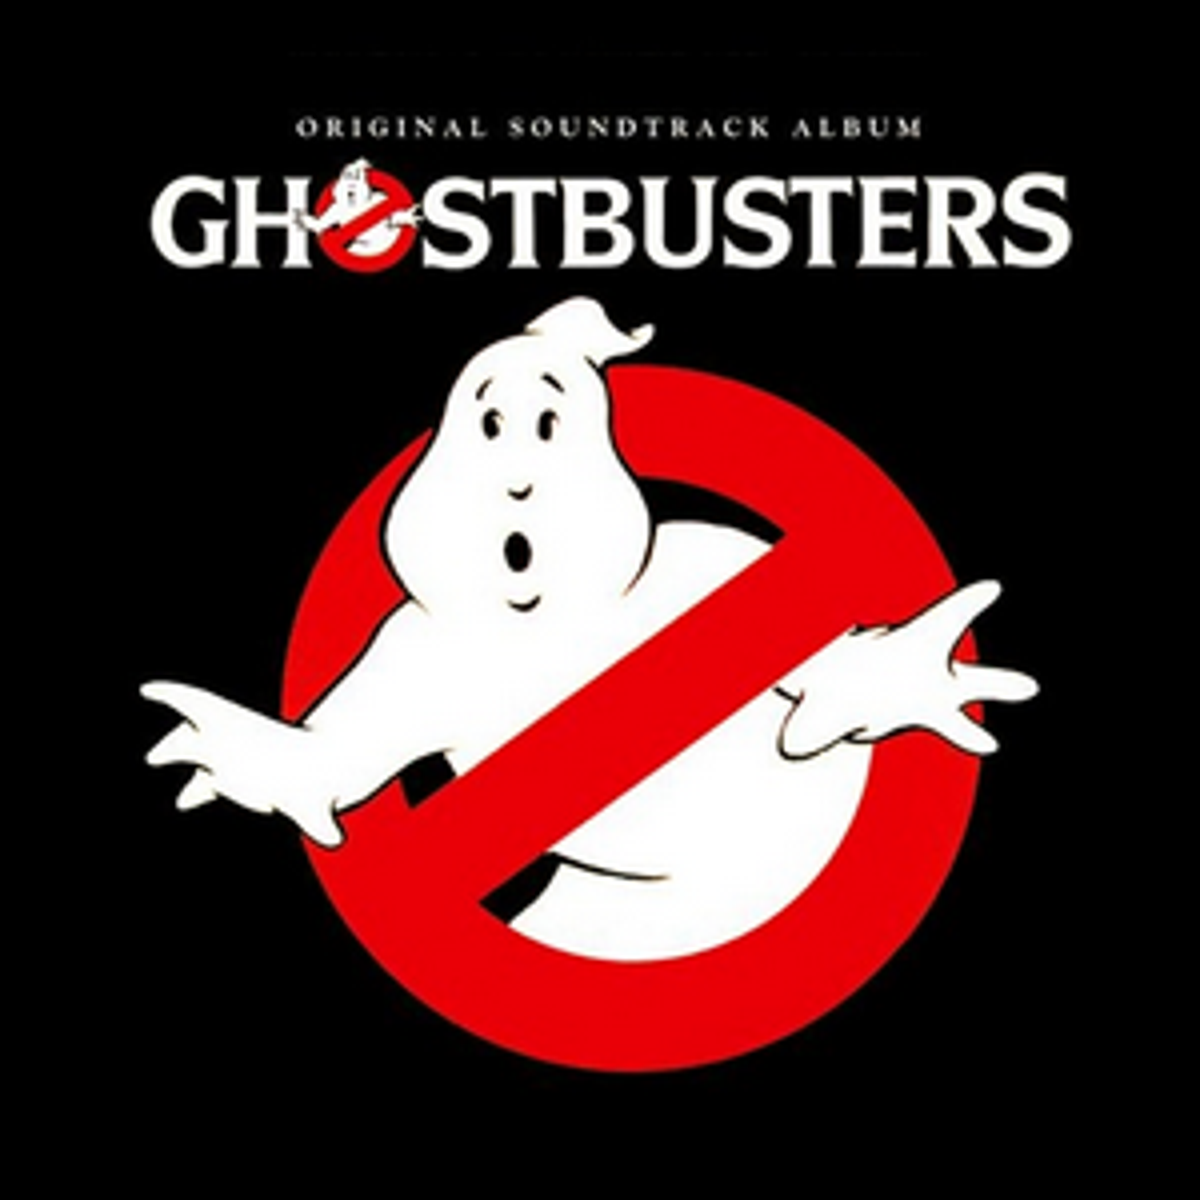 The cover art for the 1984 Ghostbusters movie soundtrack.